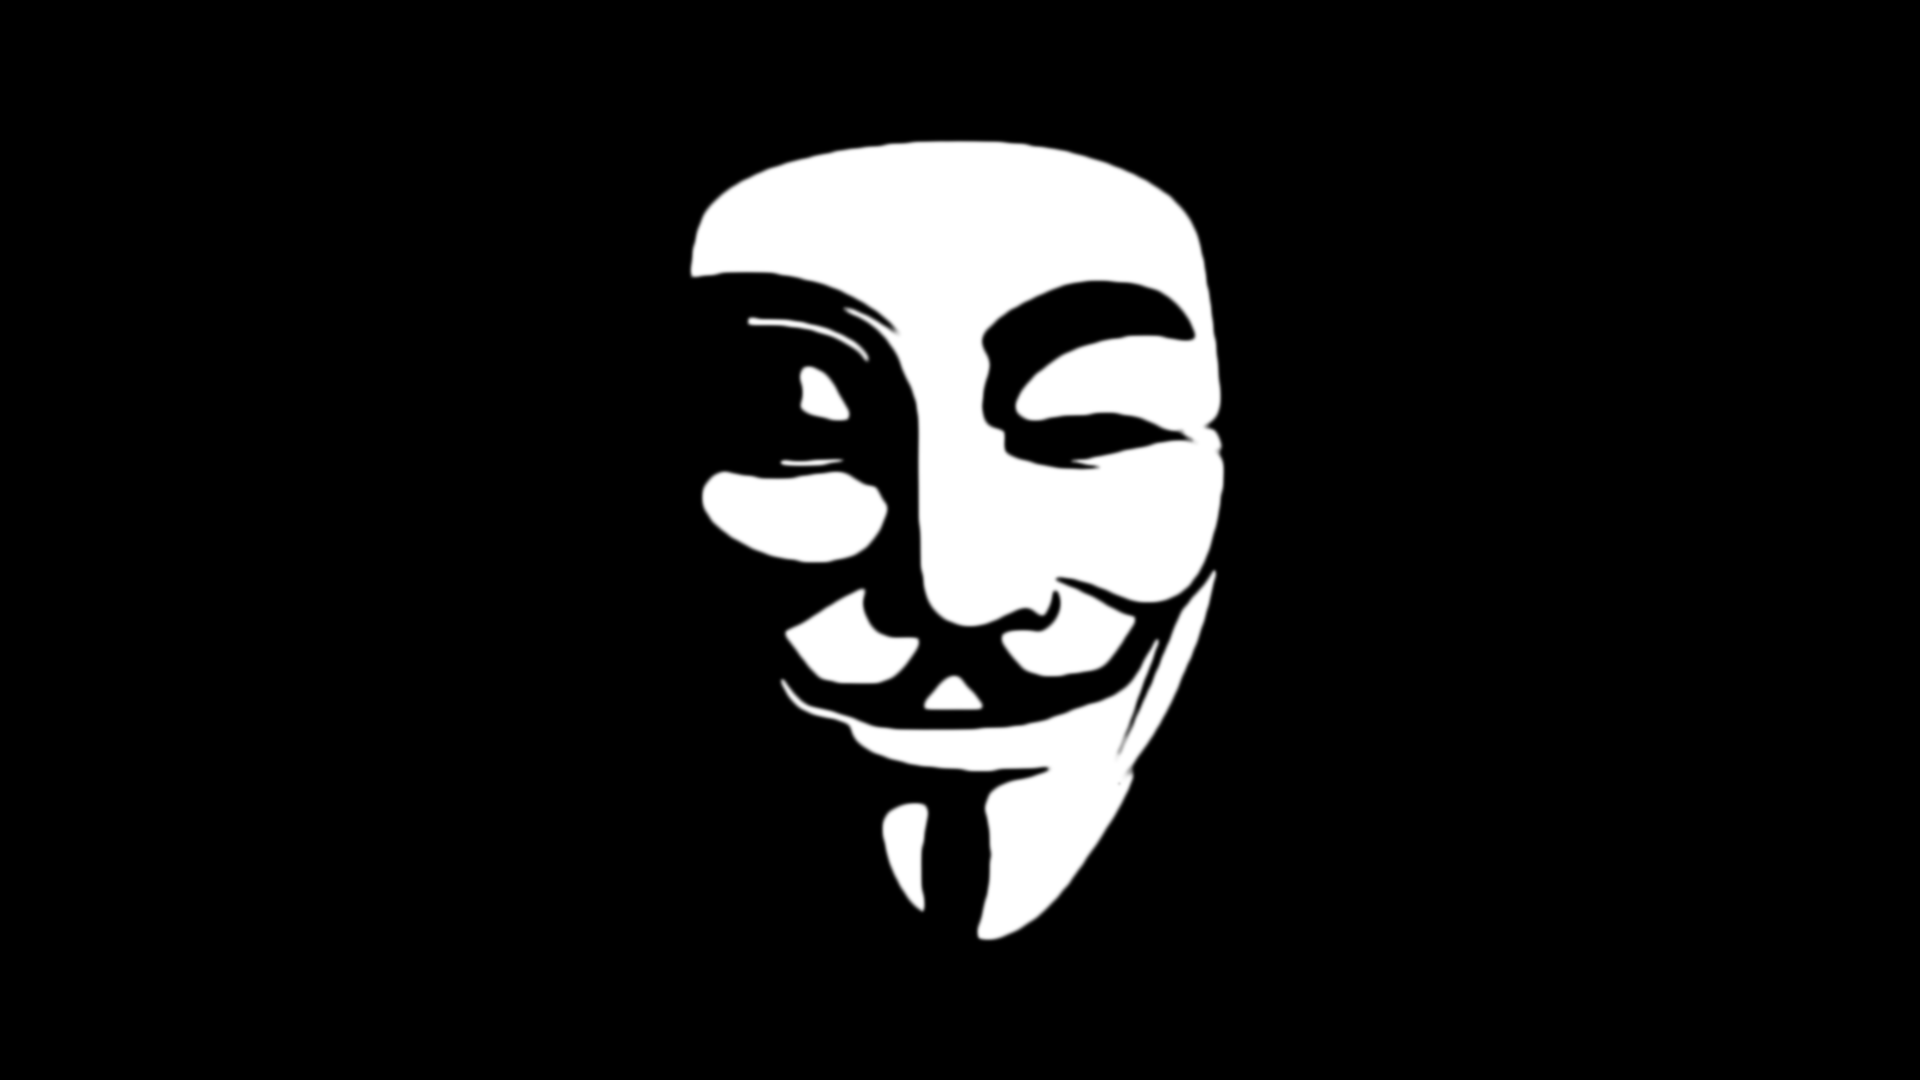 Anonymous Wallpapers  Full HD wallpaper search